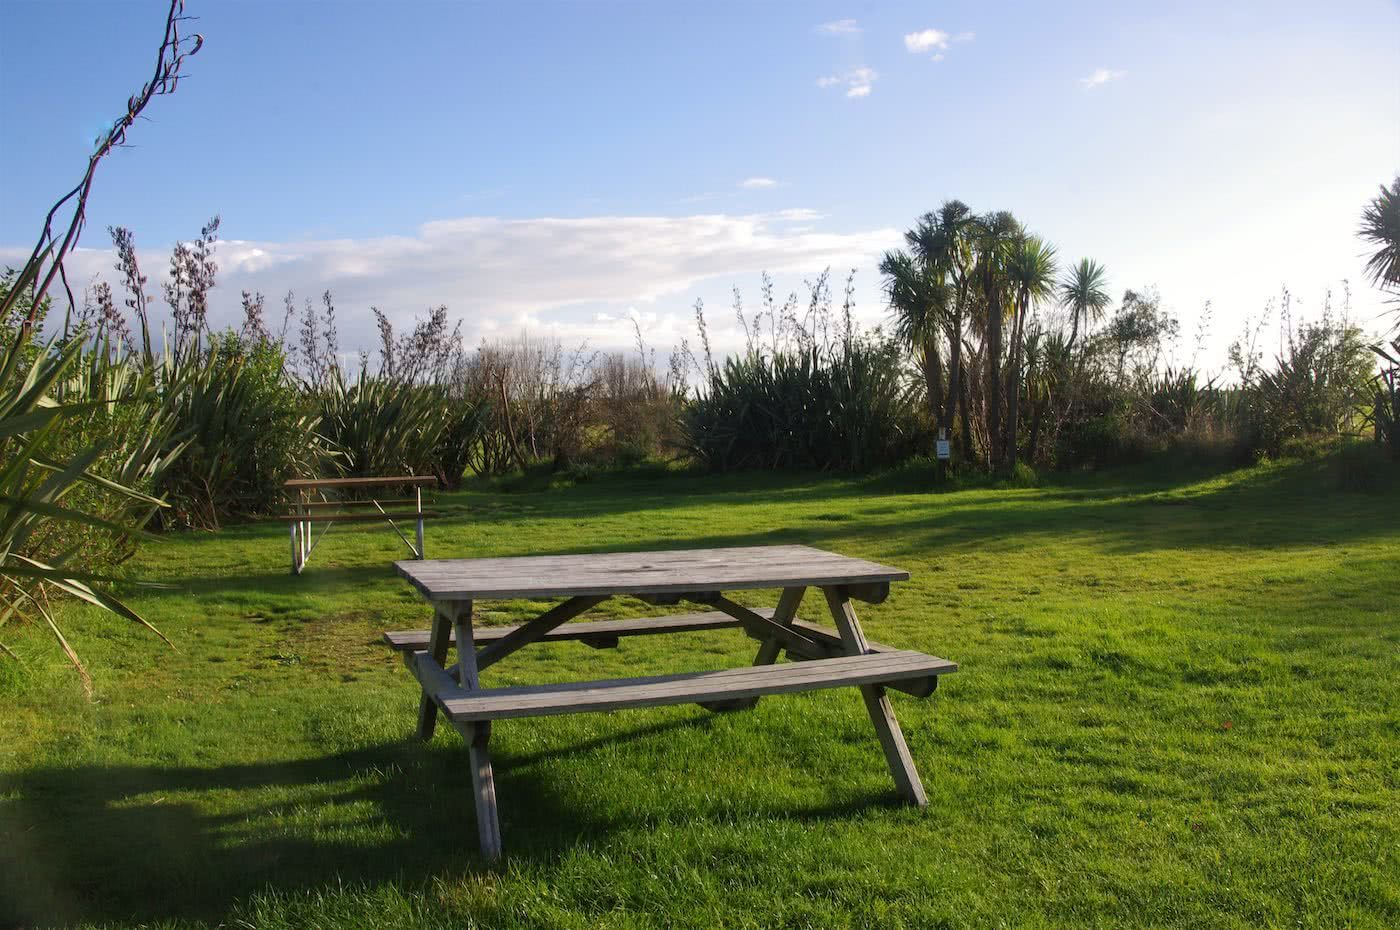 Create Your Own Playground // Ōkārito (NZ), picnic bench, grass